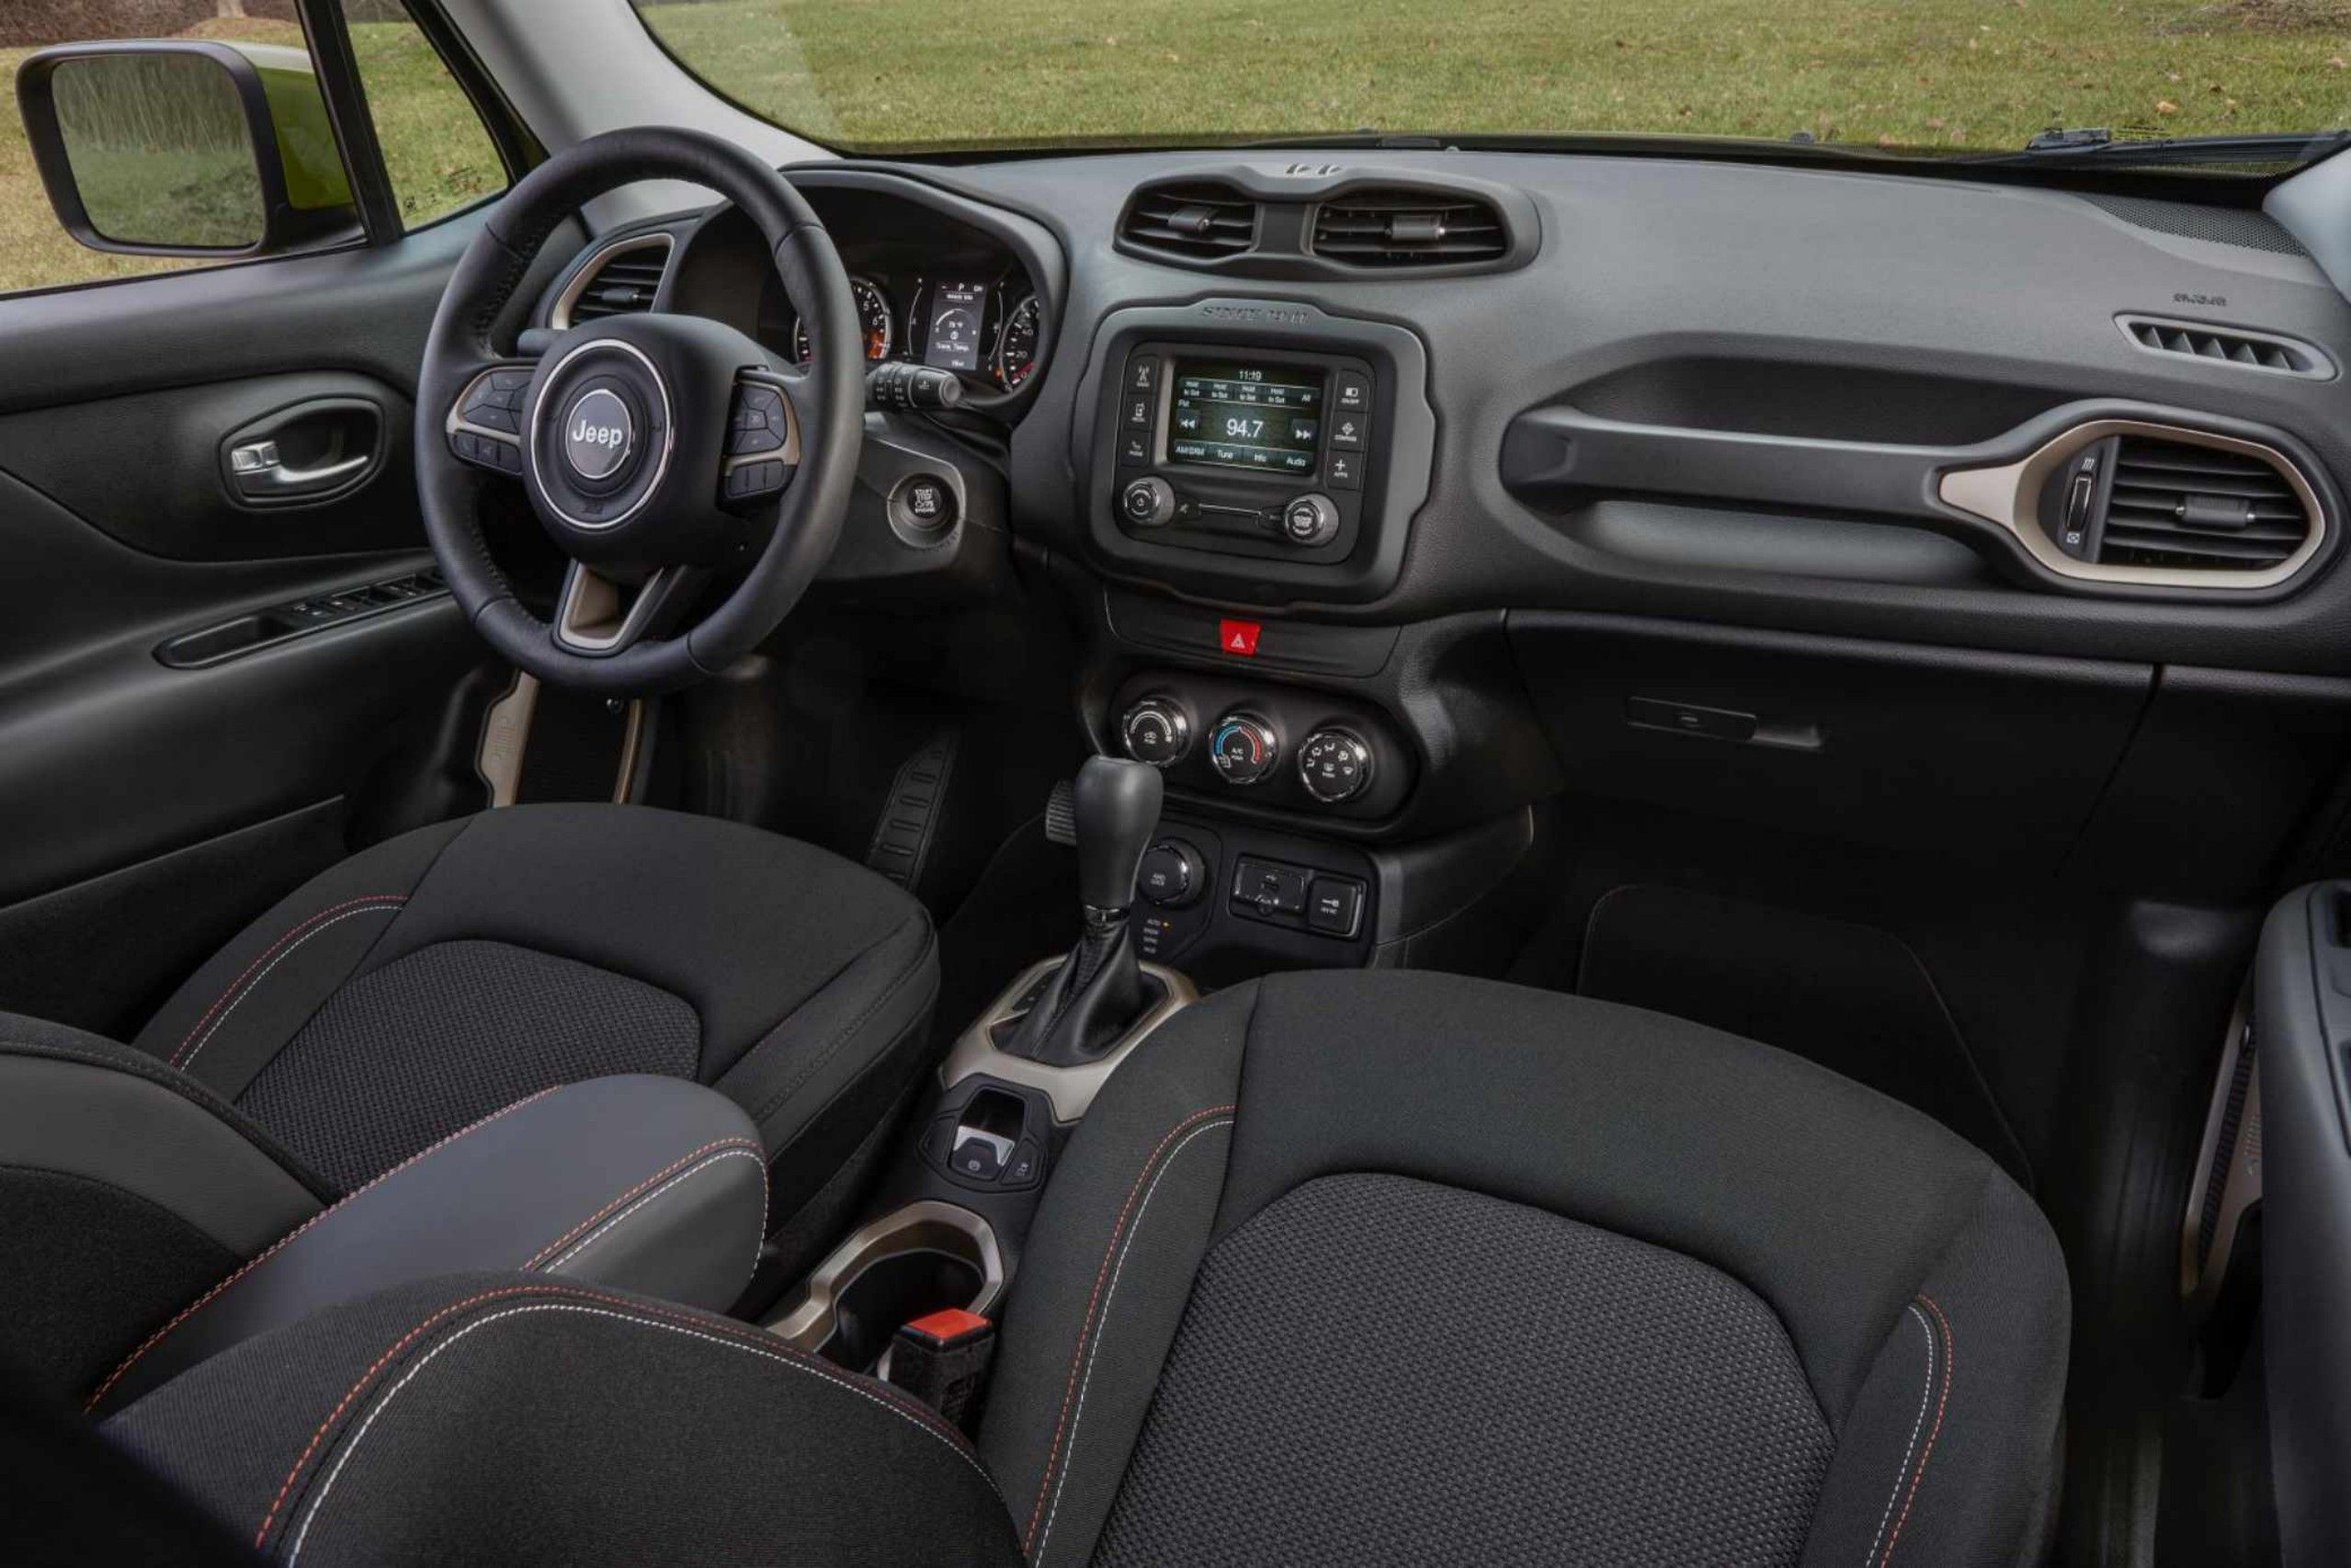 2017 Jeep Renegade Jeep Renegade Jeep Renegade 2017 Jeep Renegade Interior